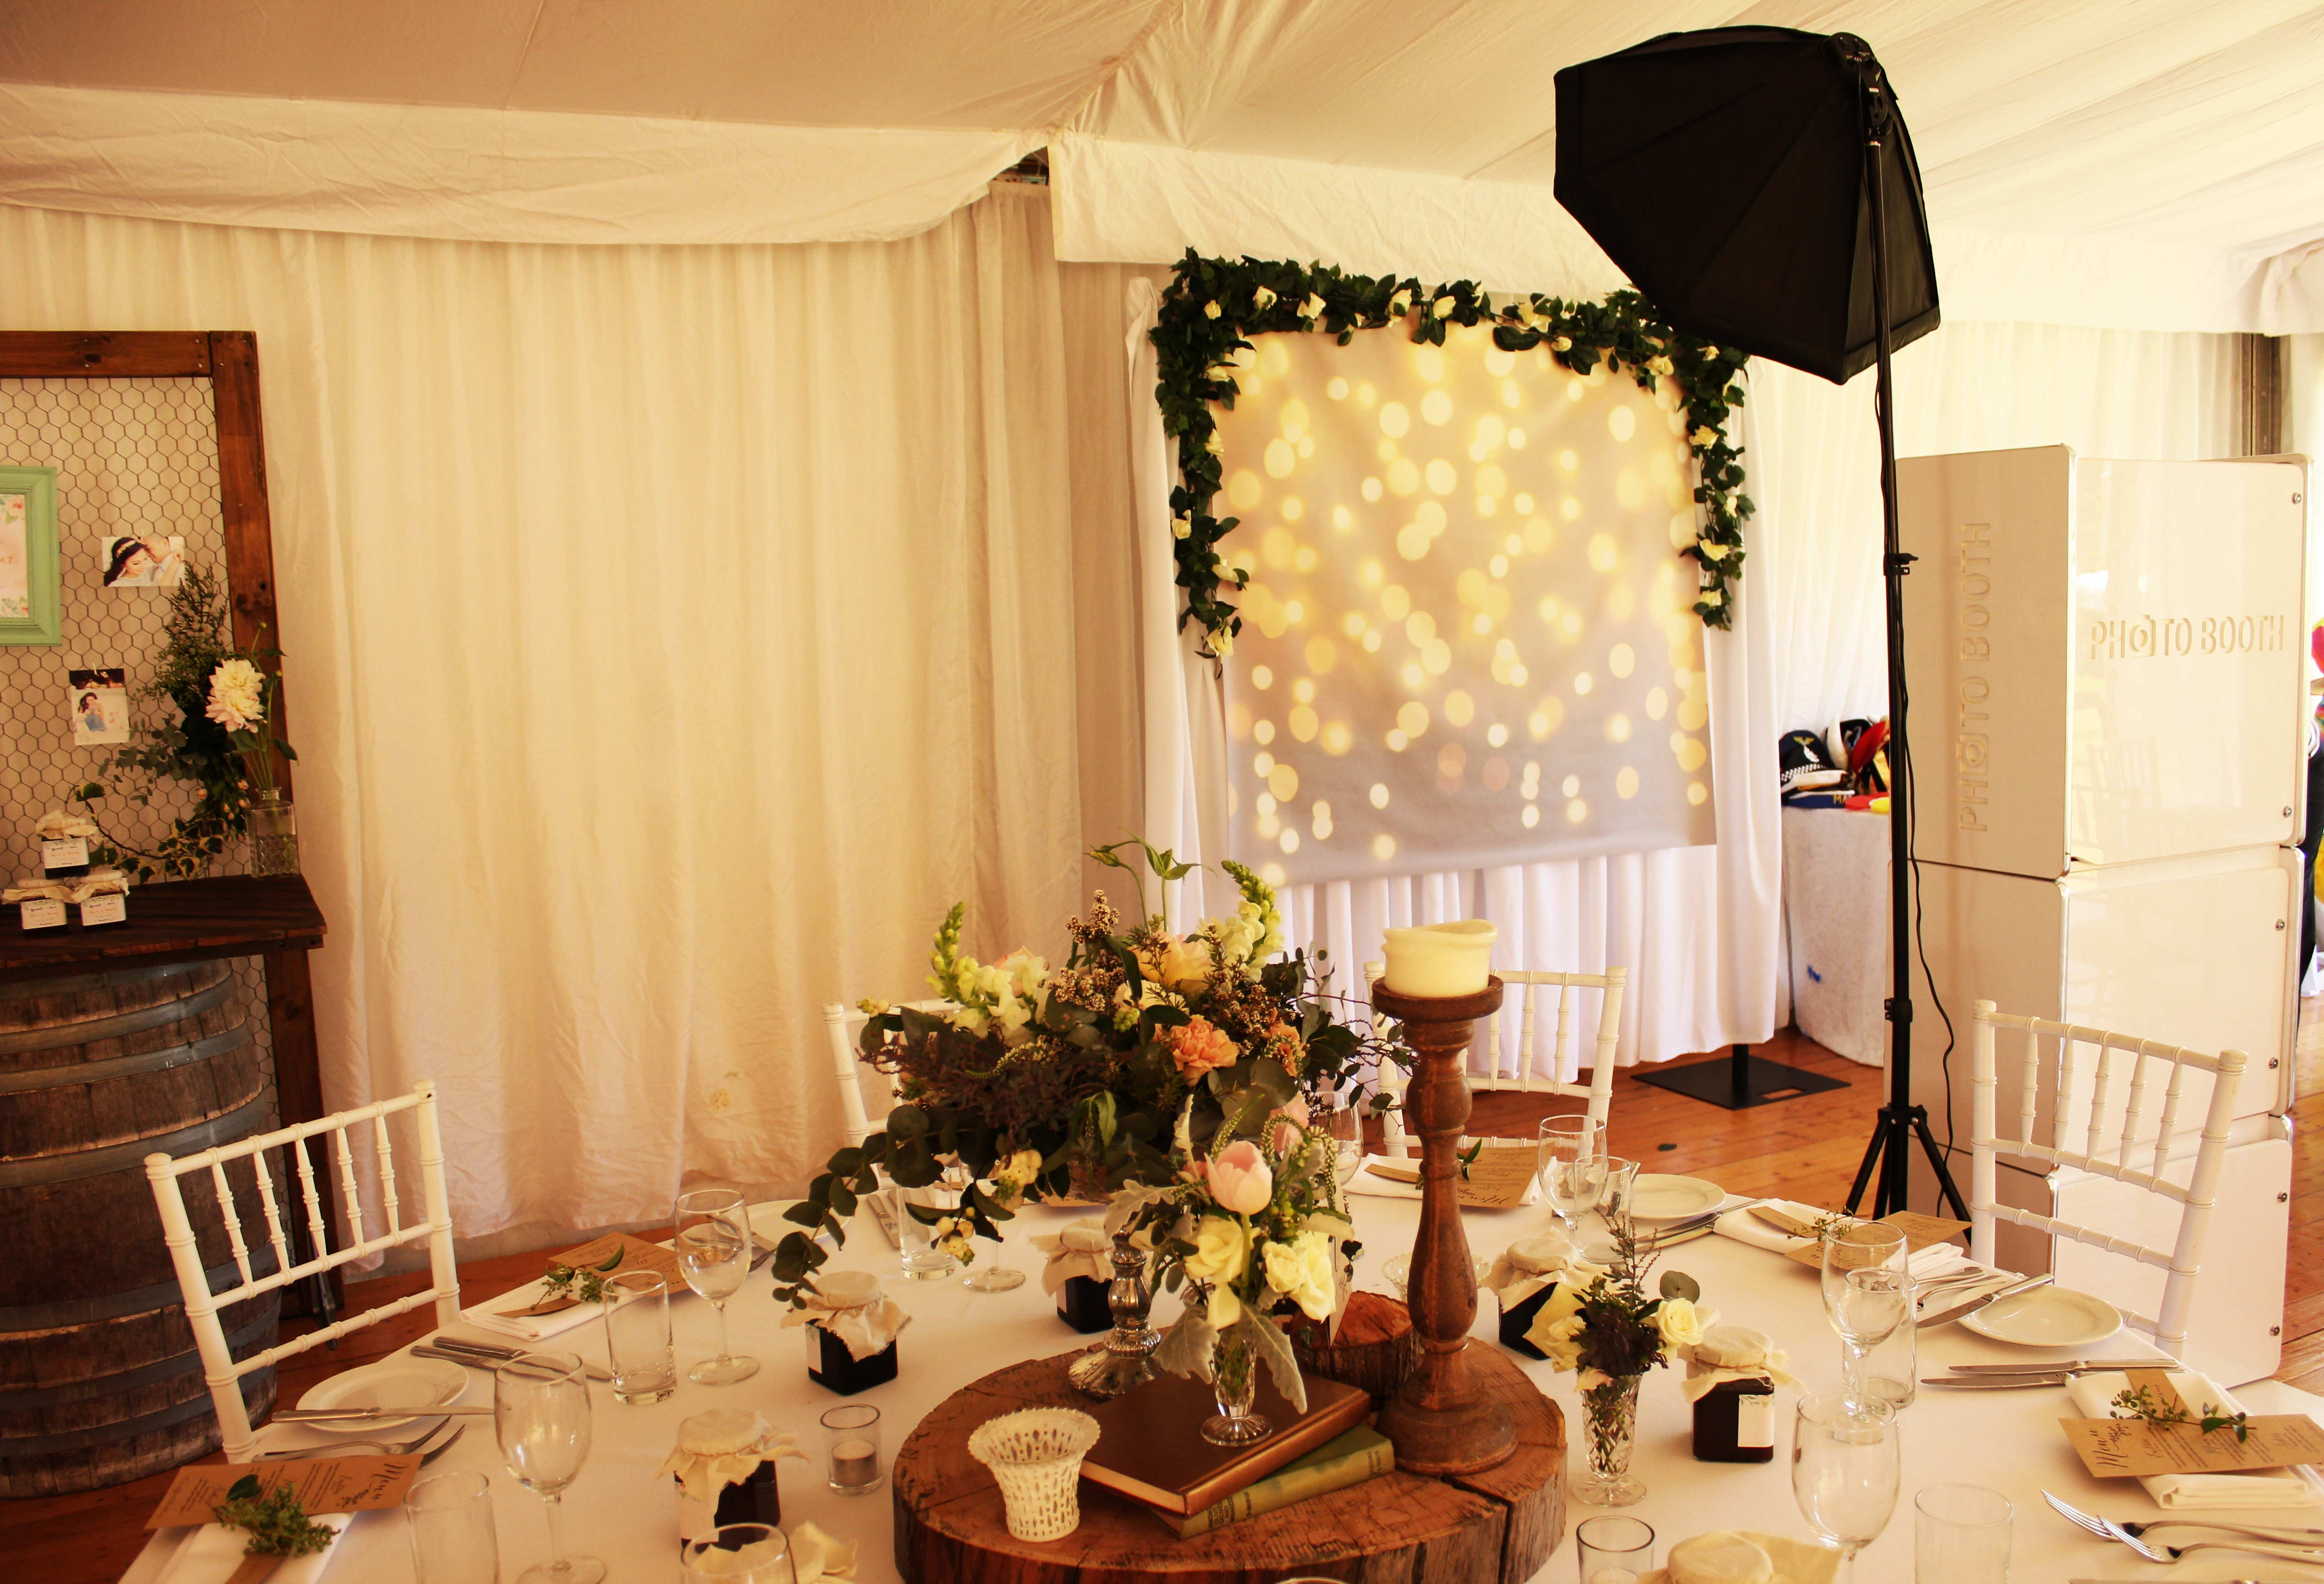 Hills-Photobooth-for-hire-sydeny-classic-open-booth-with-gold-light-back-drop2